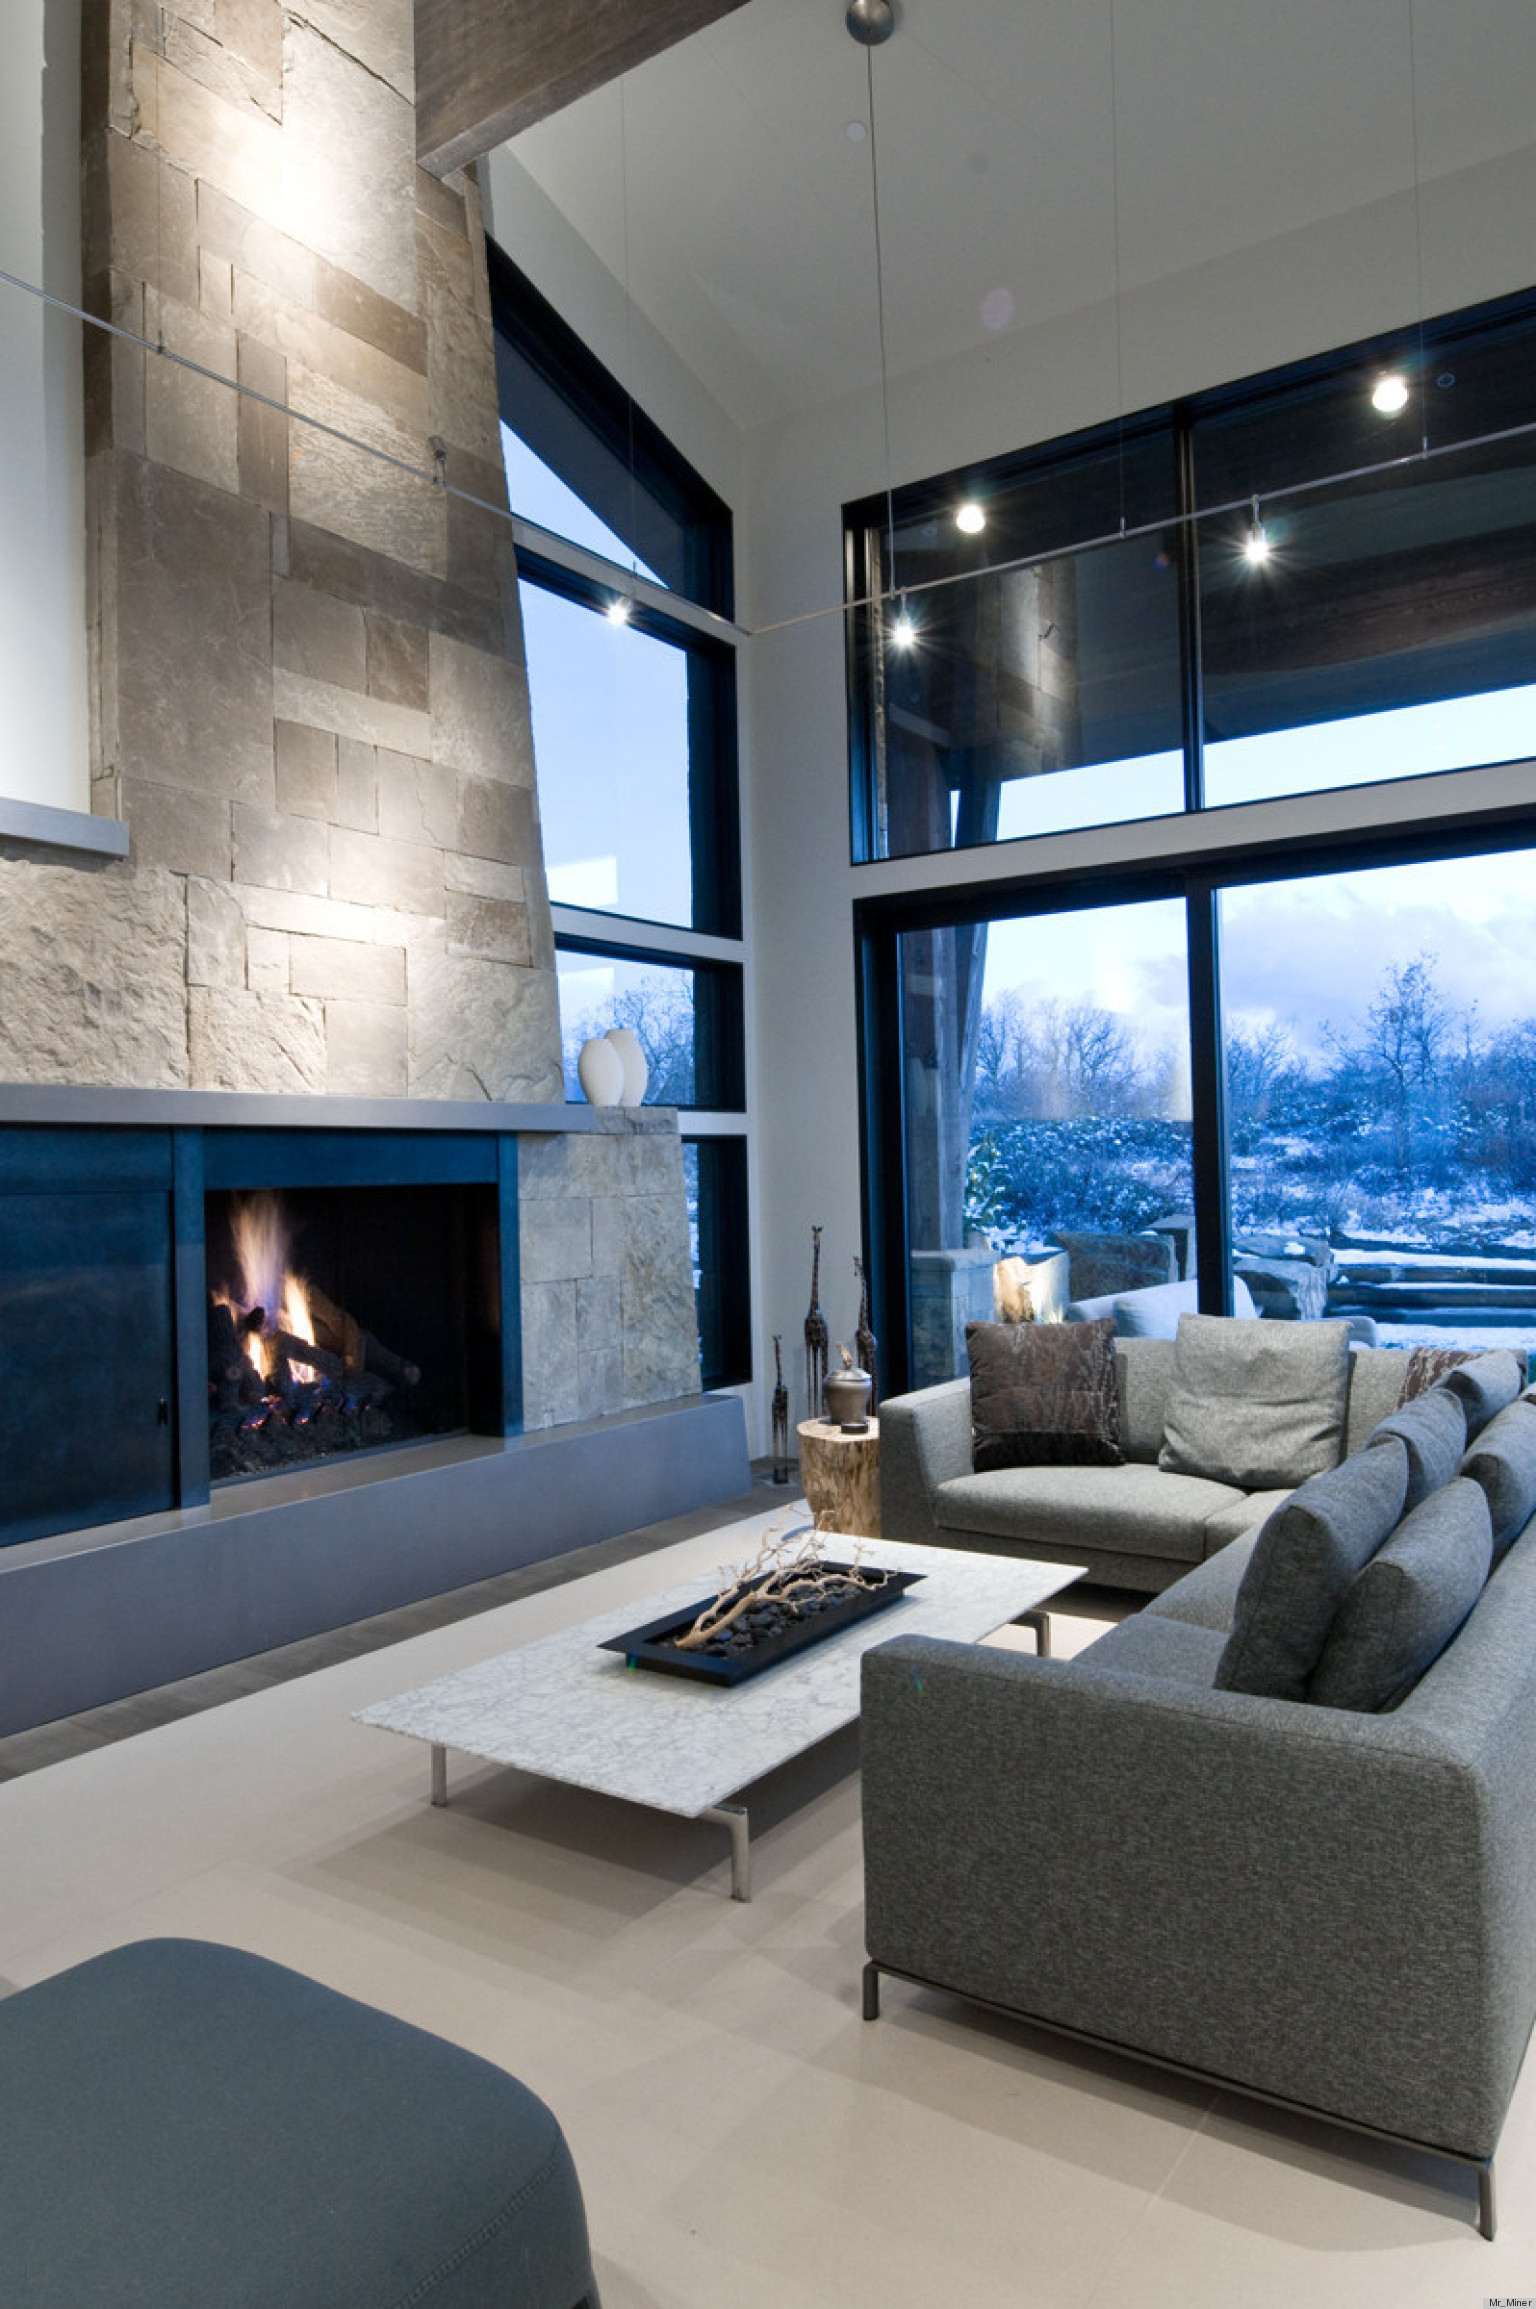 Spectacular Modern Mountain Home In Park City Utah: 'Mountain Modern' Home In Deer Valley, Utah Feels Like The